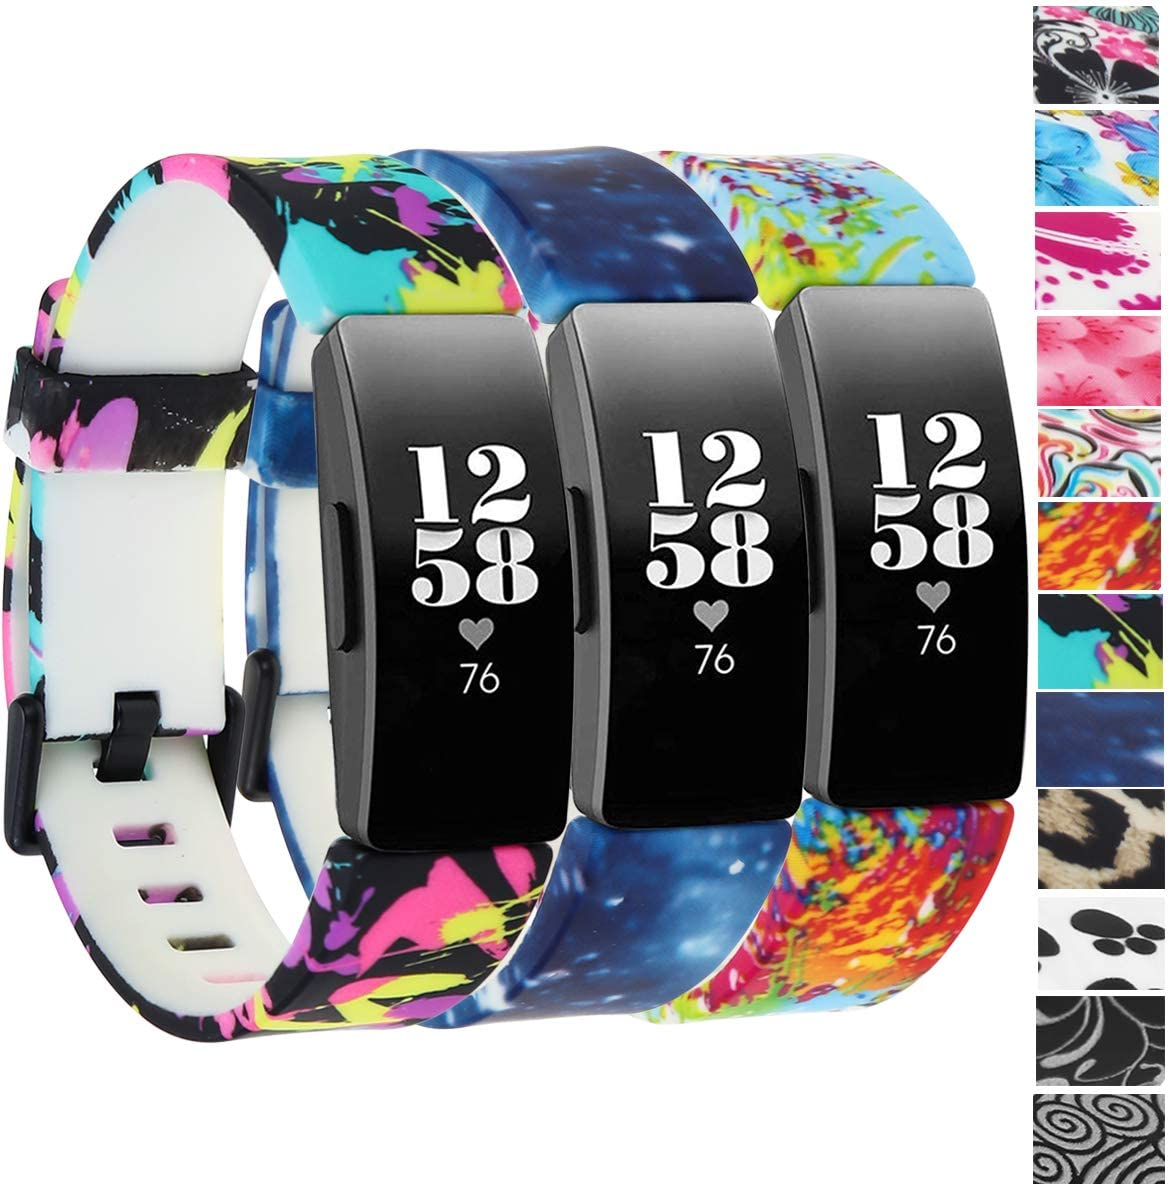 honecumi Floral Pattern Bands for Fitbit Inspire/Inspire HR/Ace 2 Fadeless Pattern Printed Watch Band Strap Replacement Wristband Accessory for Inspire HR and Ace 2 Women Men Small Large